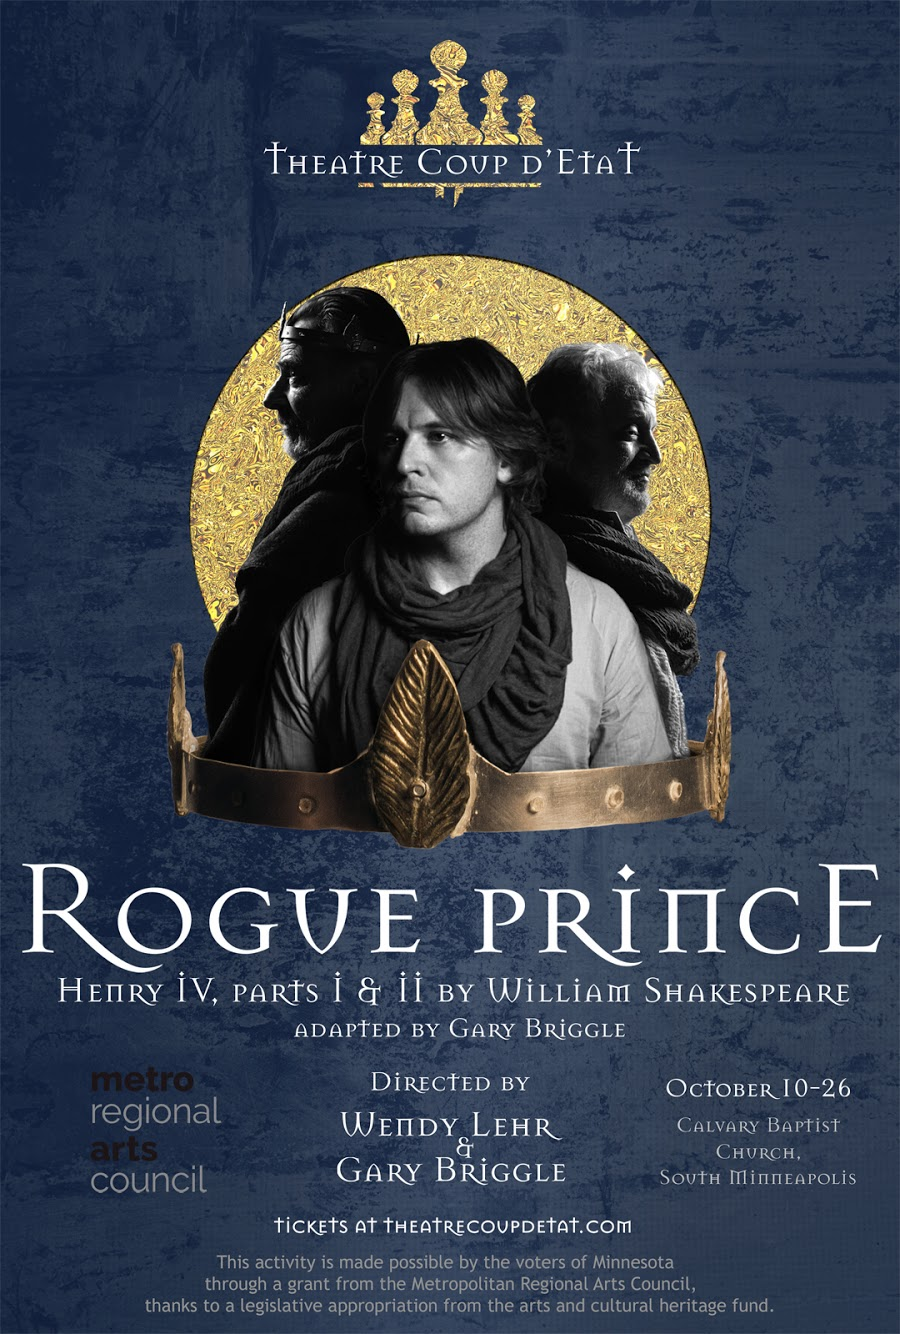 Rogue Prince: Henry IV parts 1 and 2 presented by Theatre Coup d'Etat